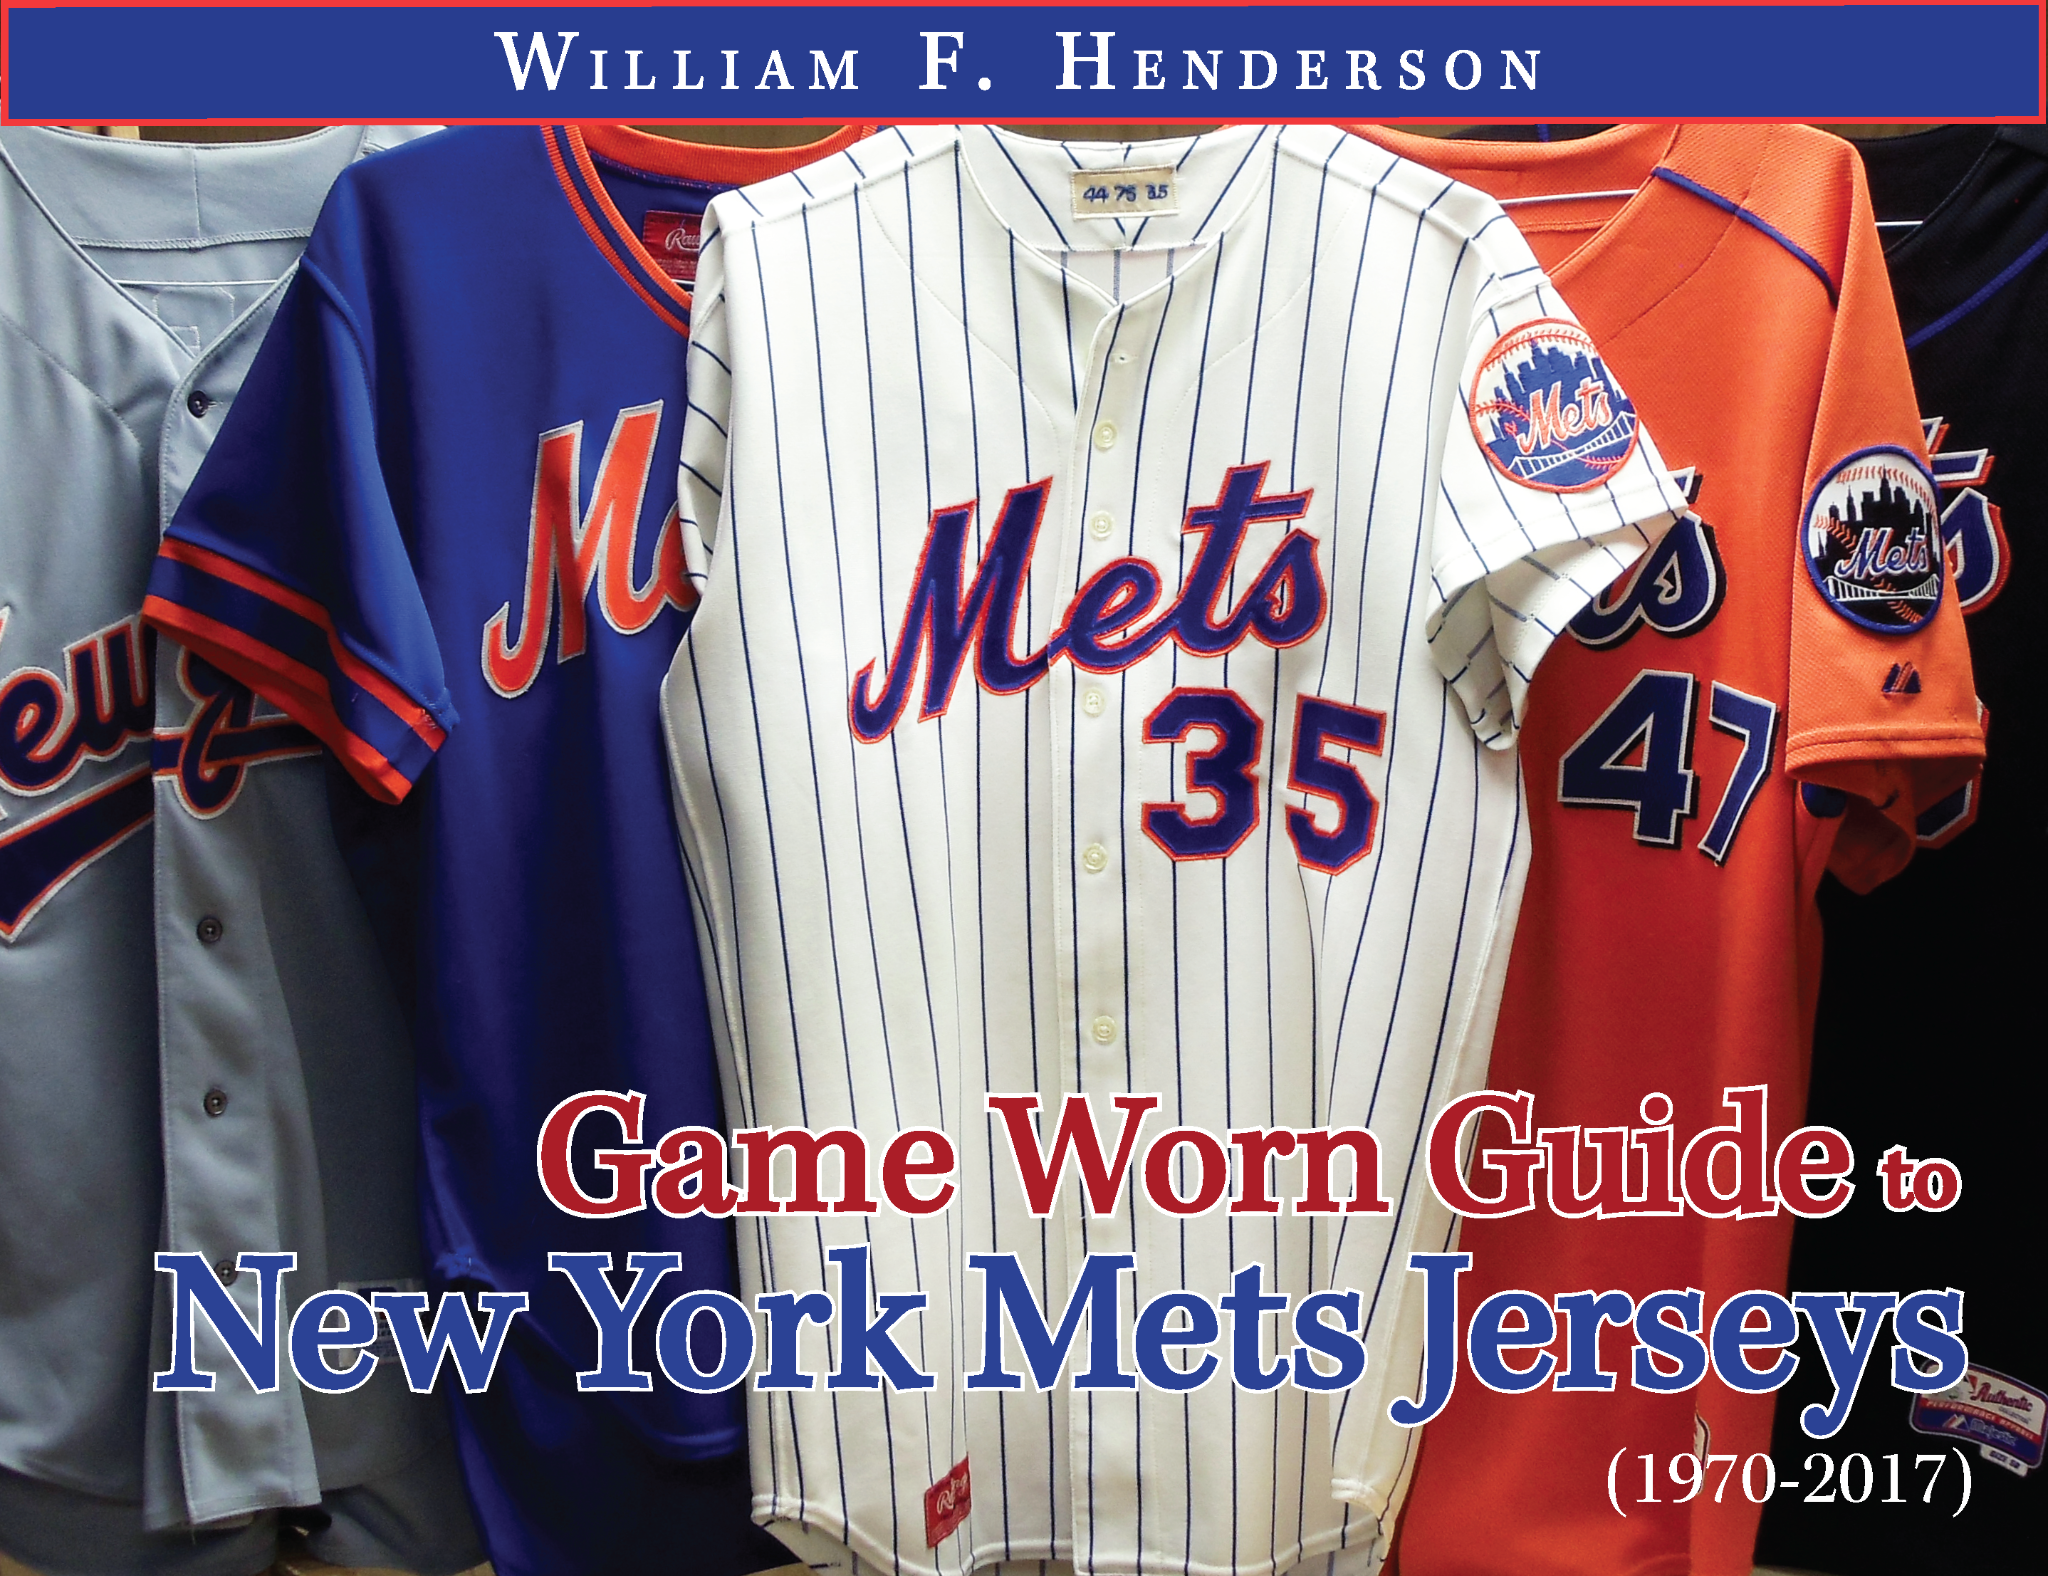 Game Worn Guide to New York Mets Jerseys (1970-2017)